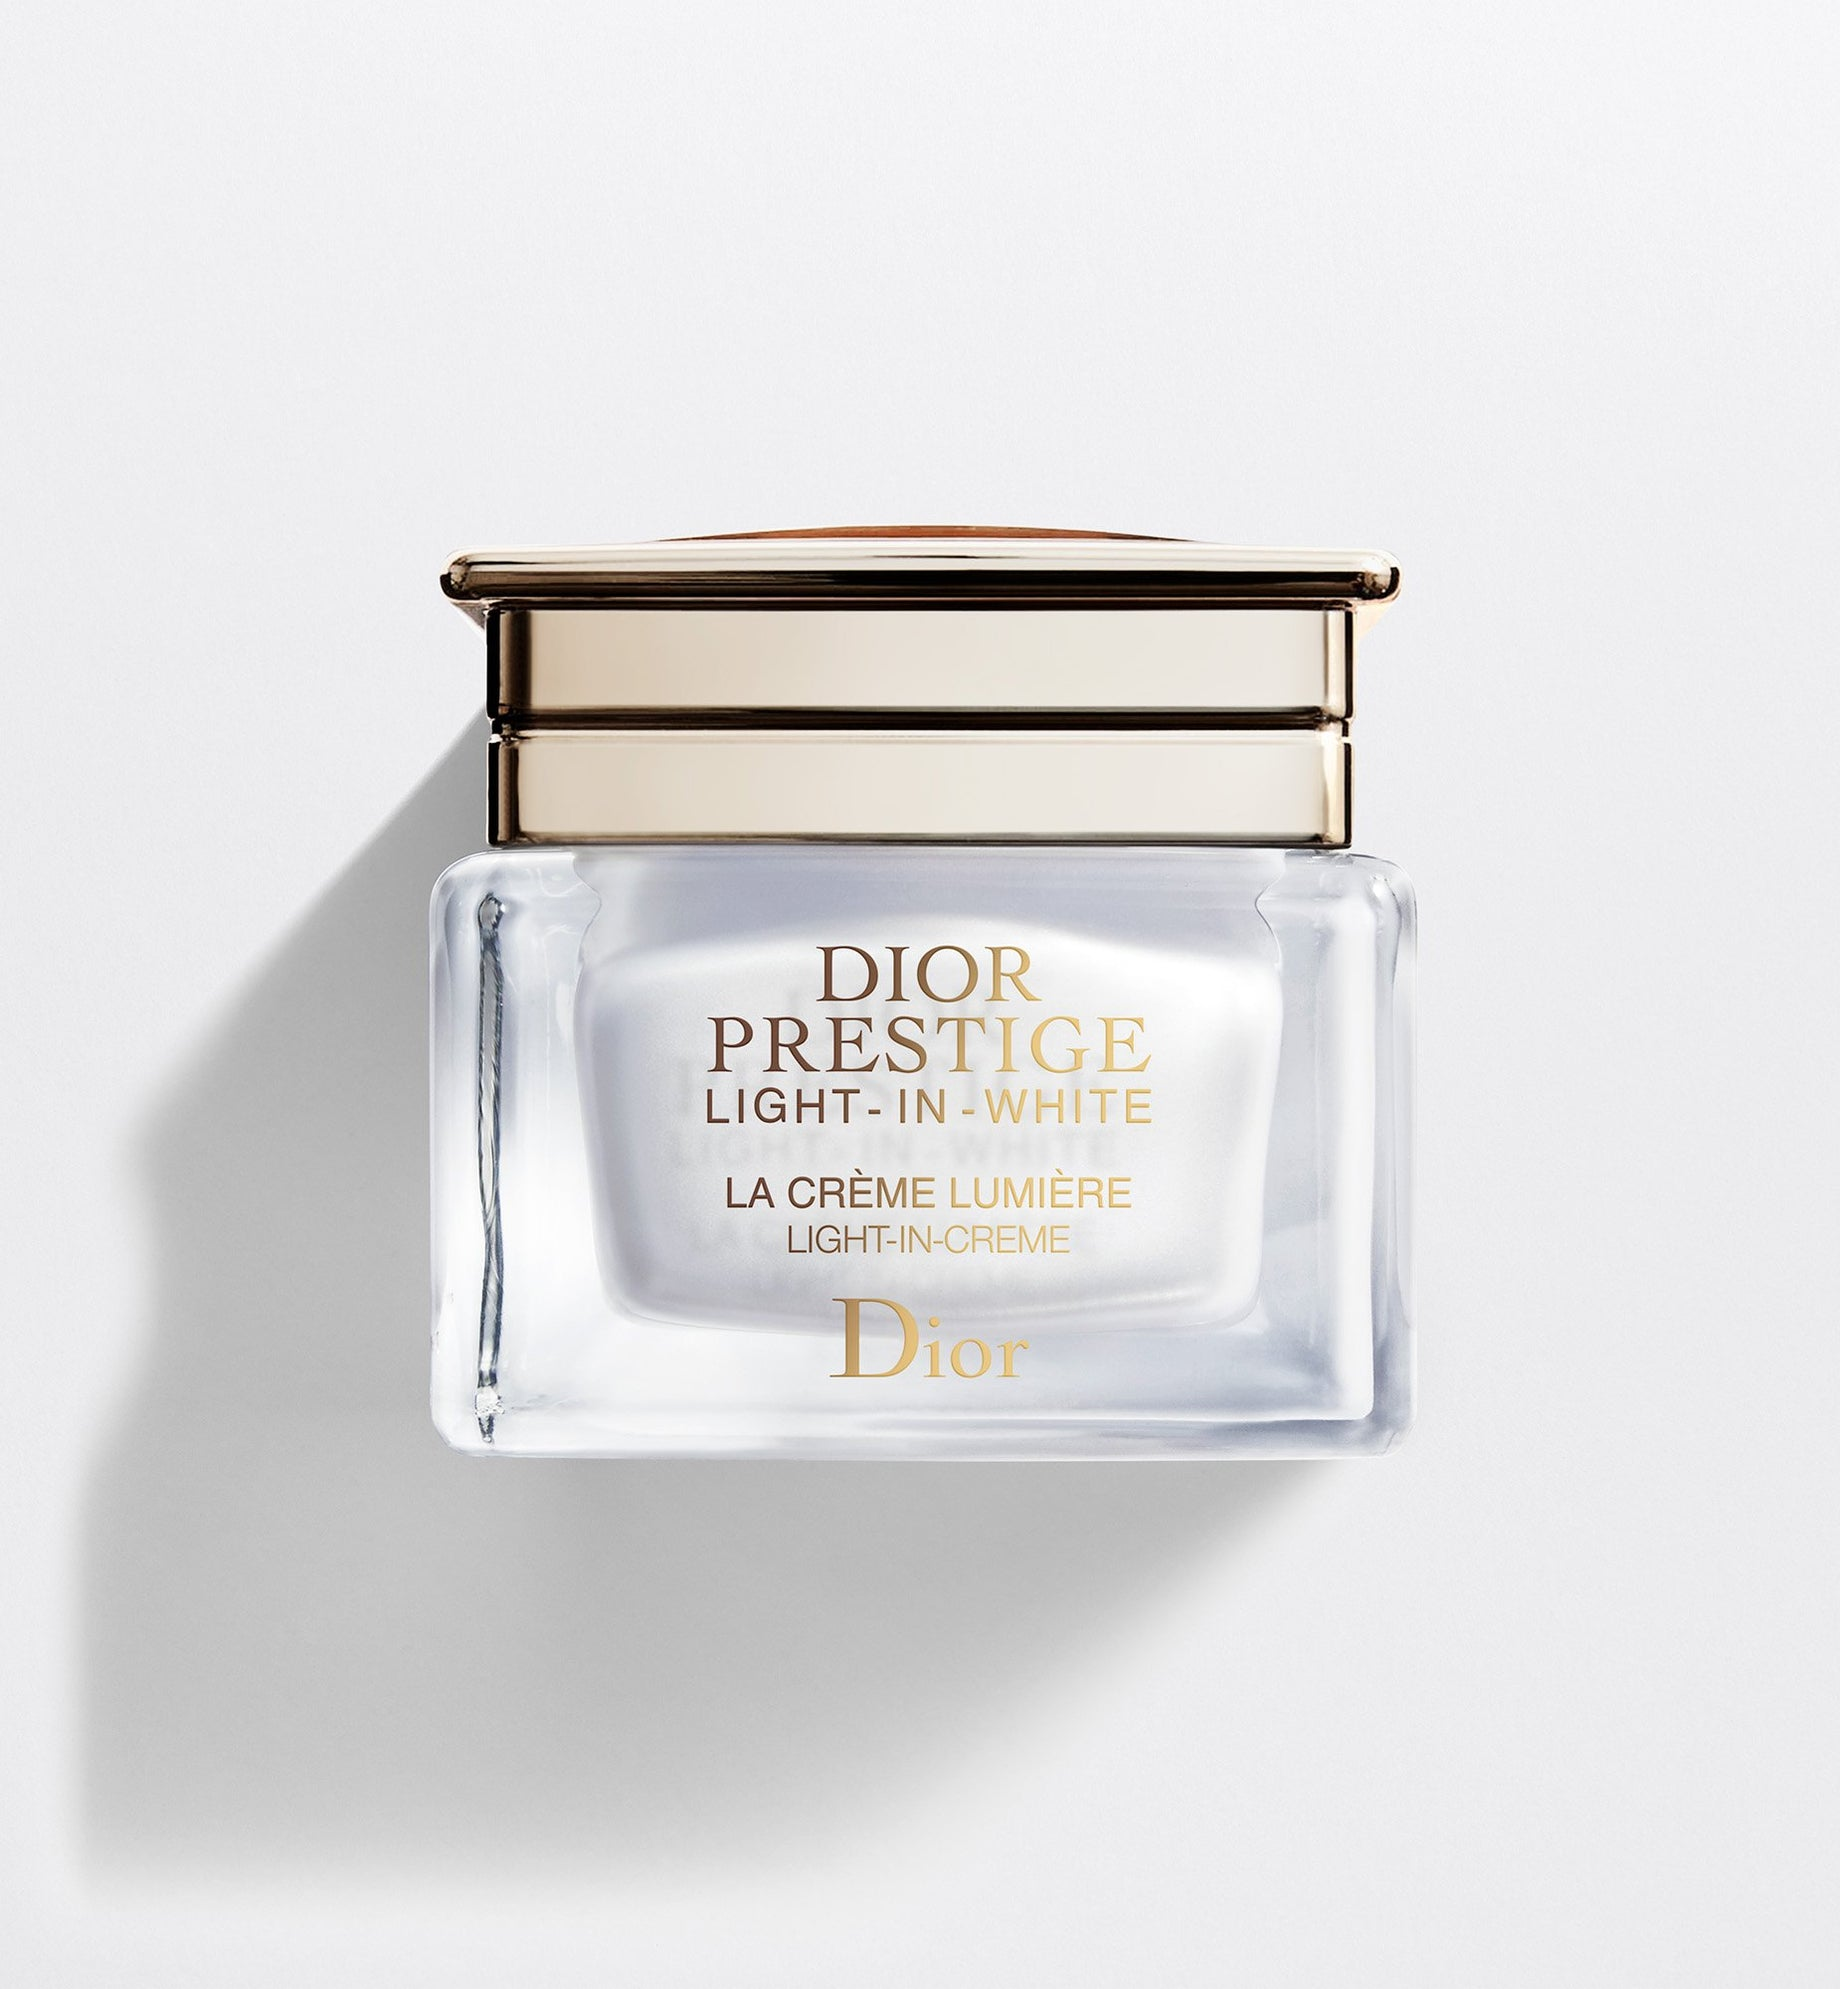 DIOR PRESTIGE LIGHT-IN-WHITE LIGHT-IN-CRÈME